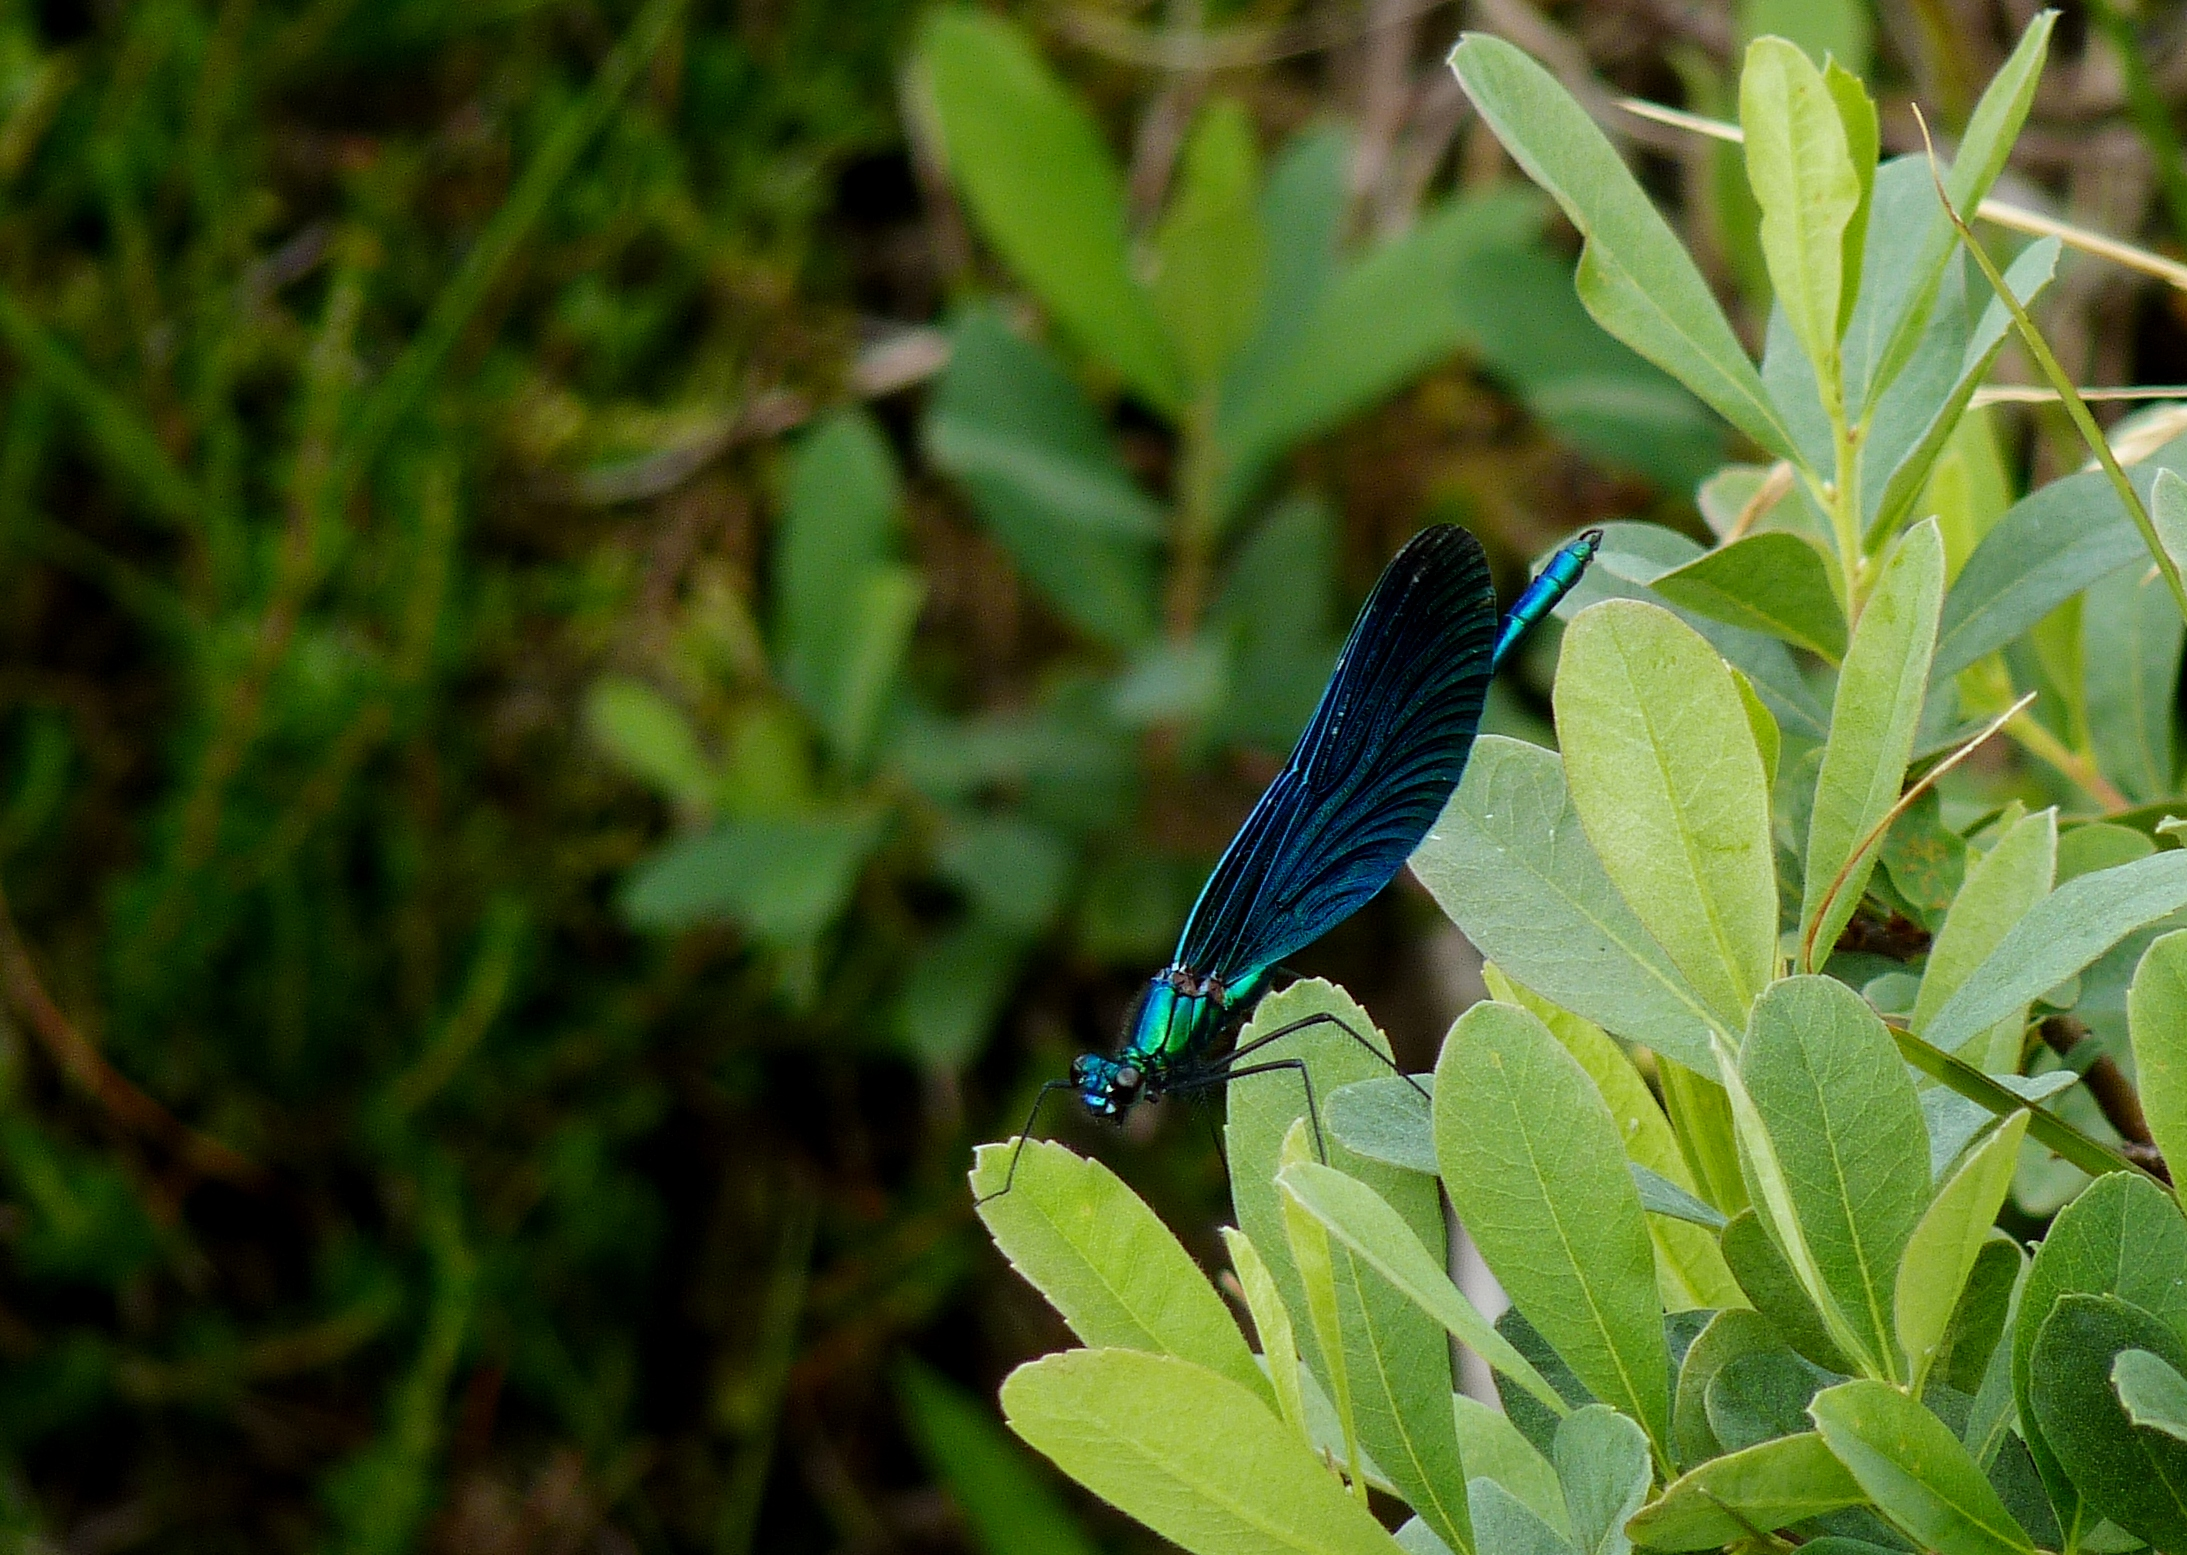 Male Beautiful Demoiselle Damselfly